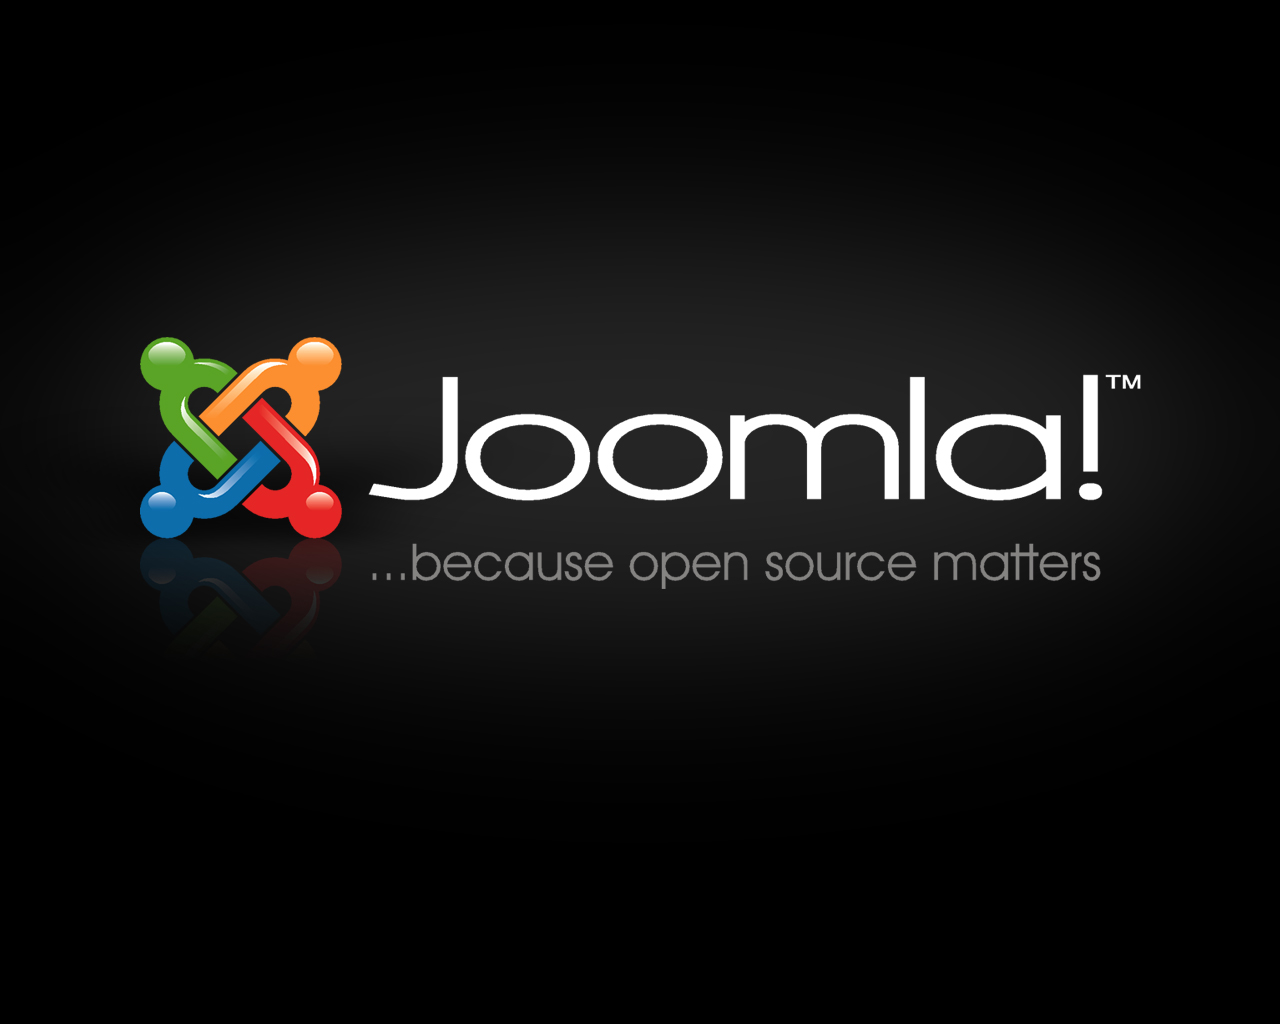 Joomla - Official Site